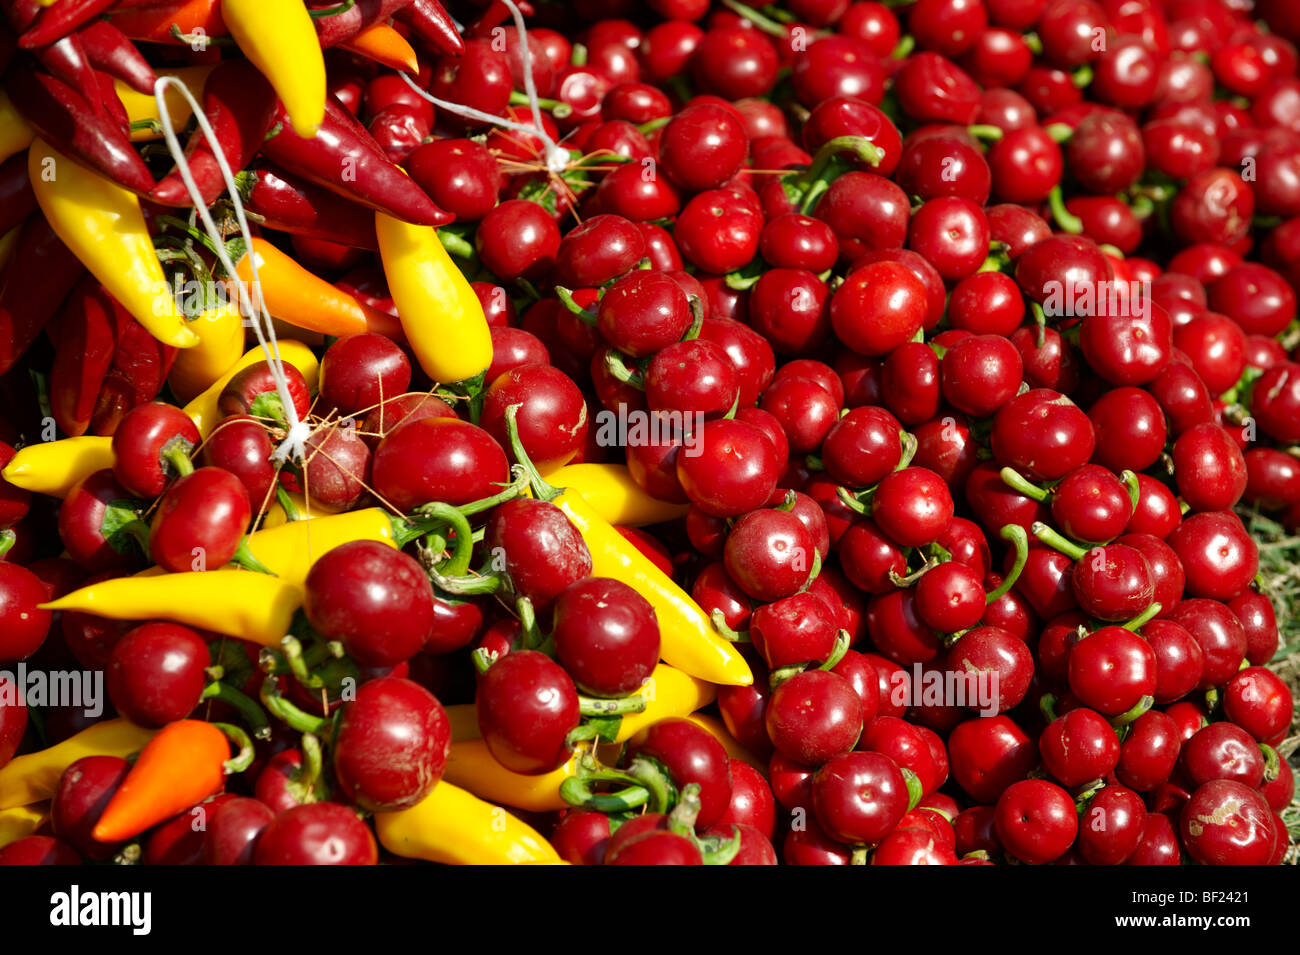 Capsicum annuum or chili peppers drying to make Hungarian paprika - Hungary - Stock Image